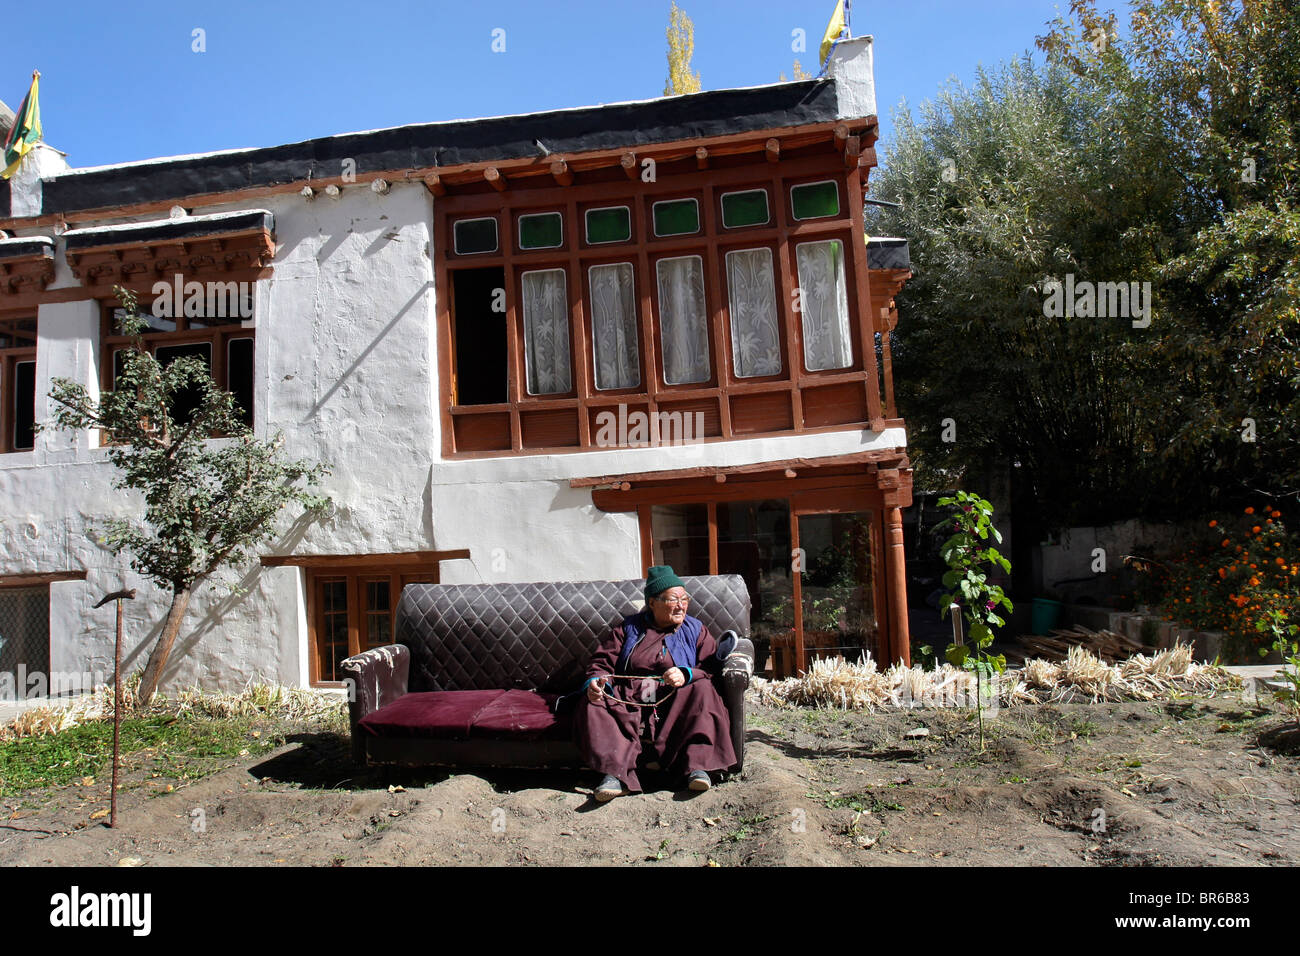 Old Woman Outside House India Stock Photos & Old Woman Outside House India Stock Images - Alamy